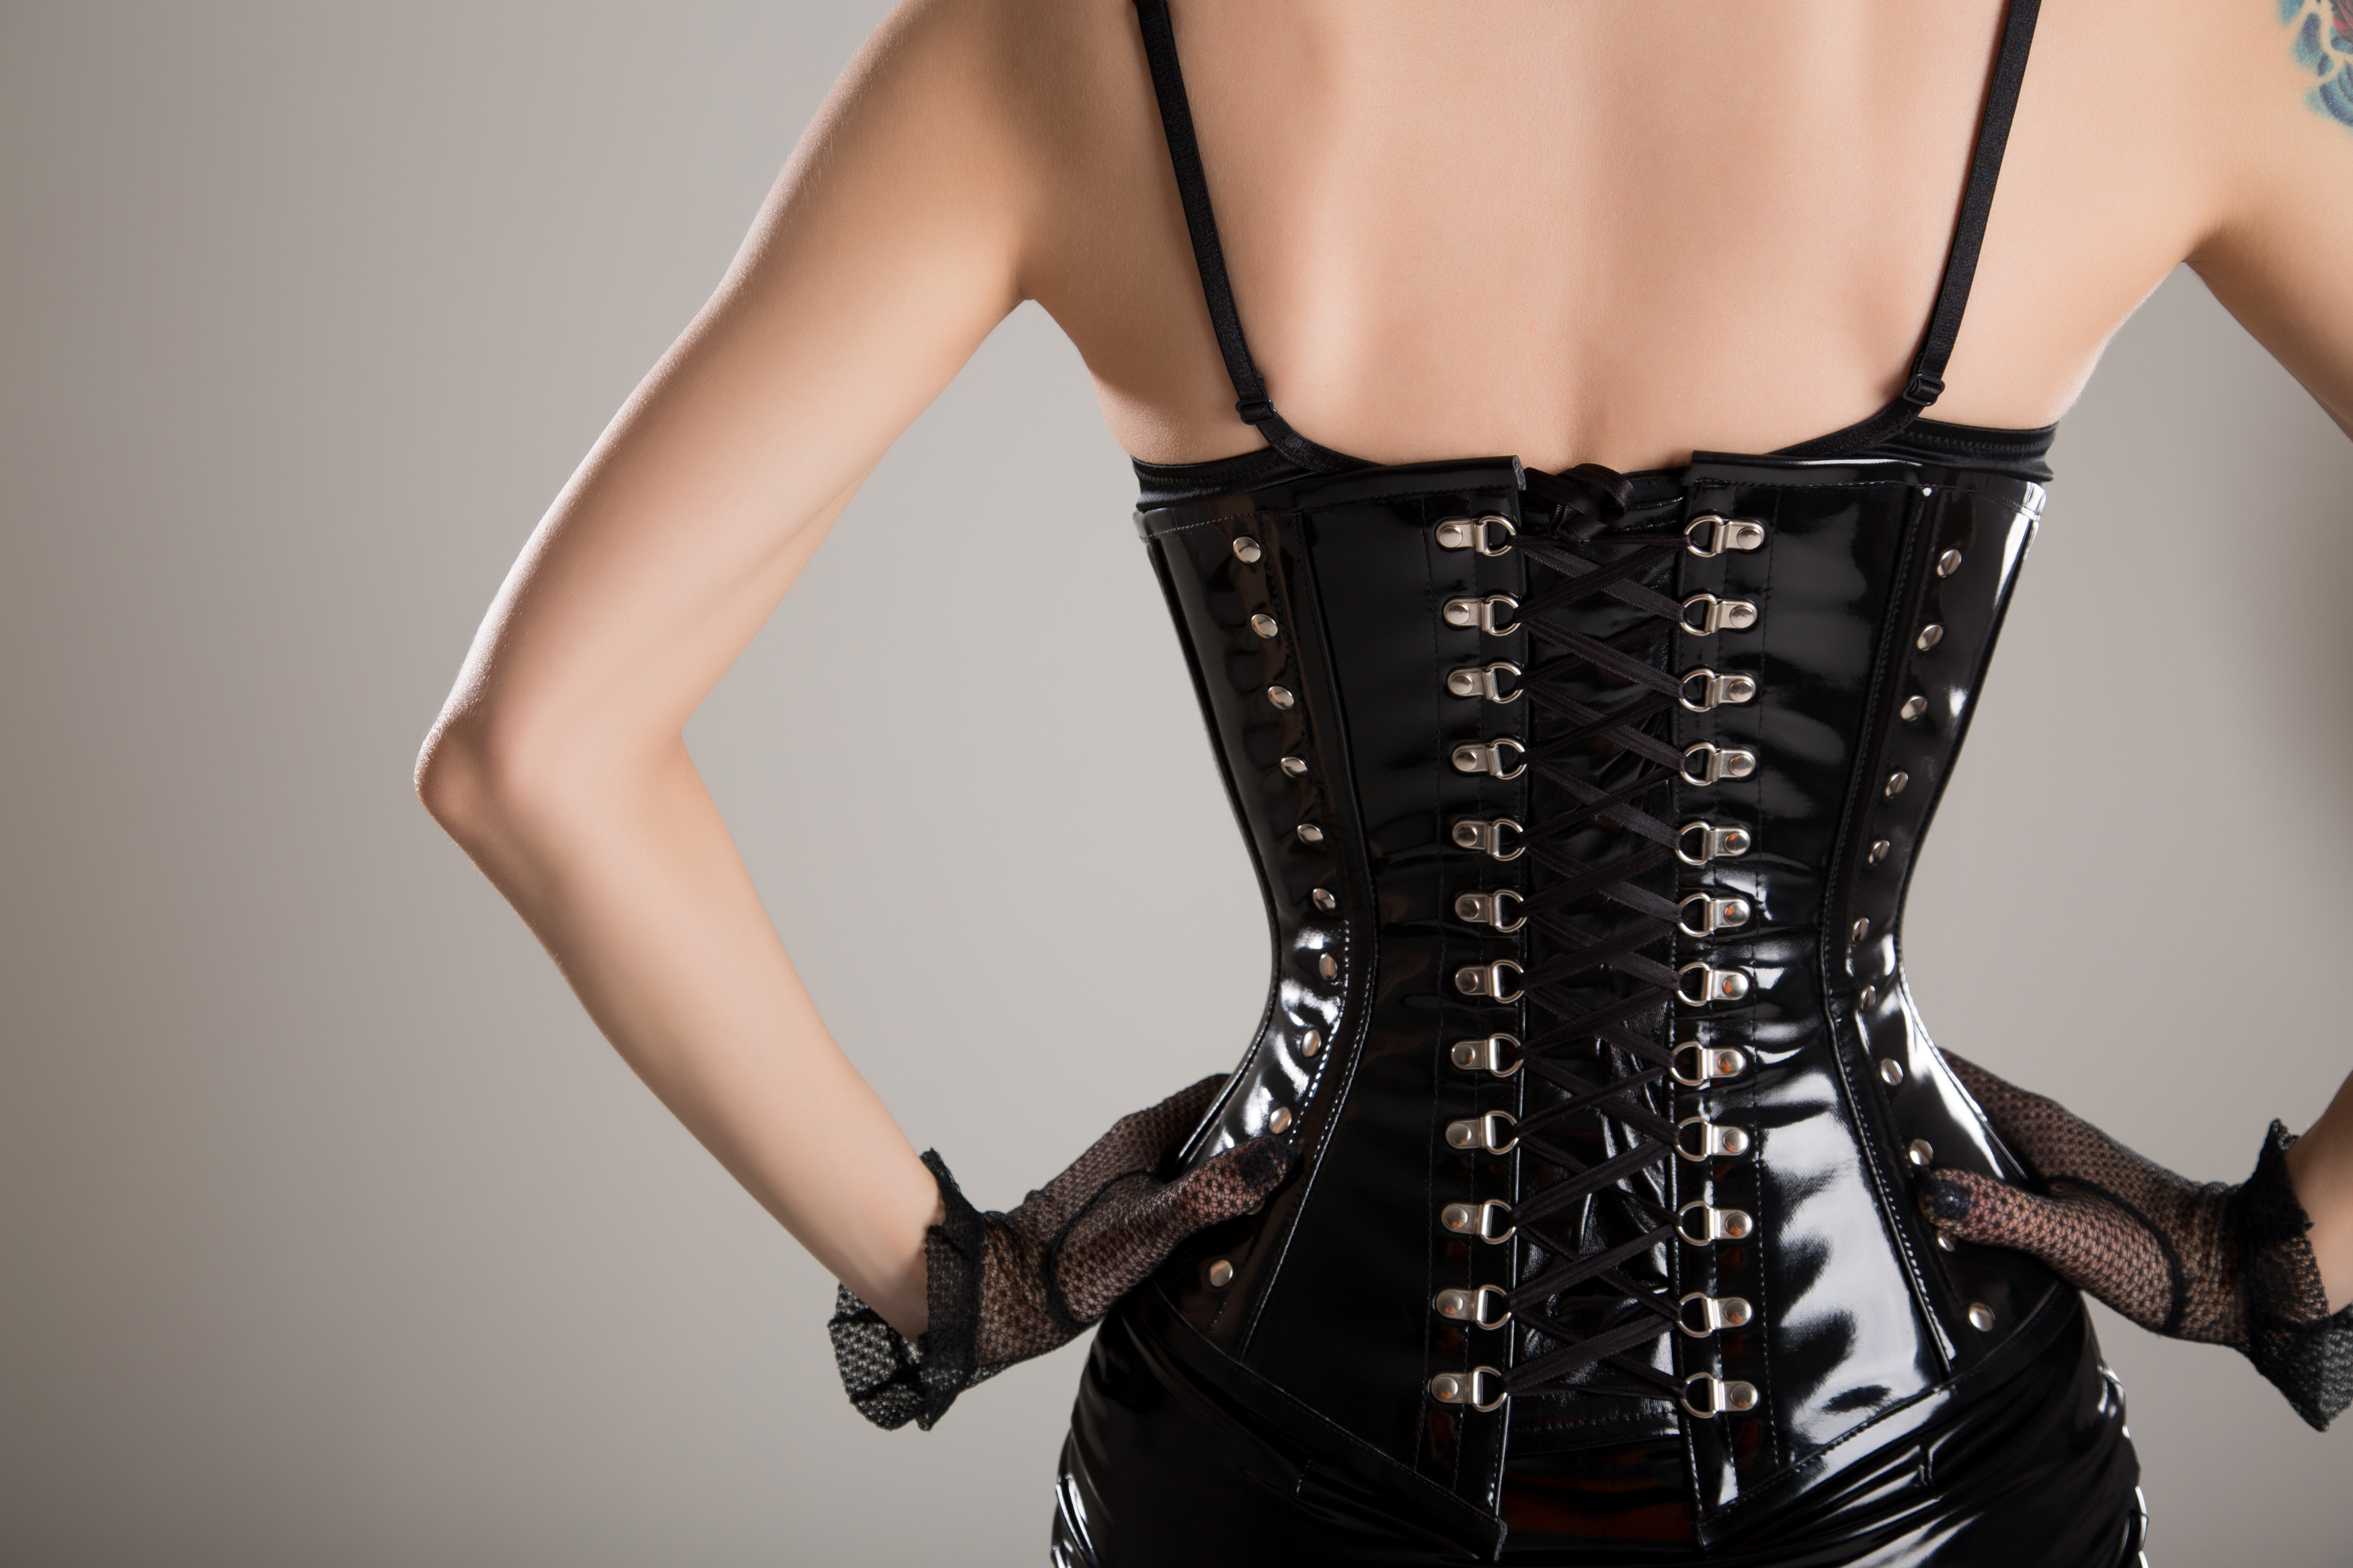 13 Things You're Dying to Know About Waist Training - Vox